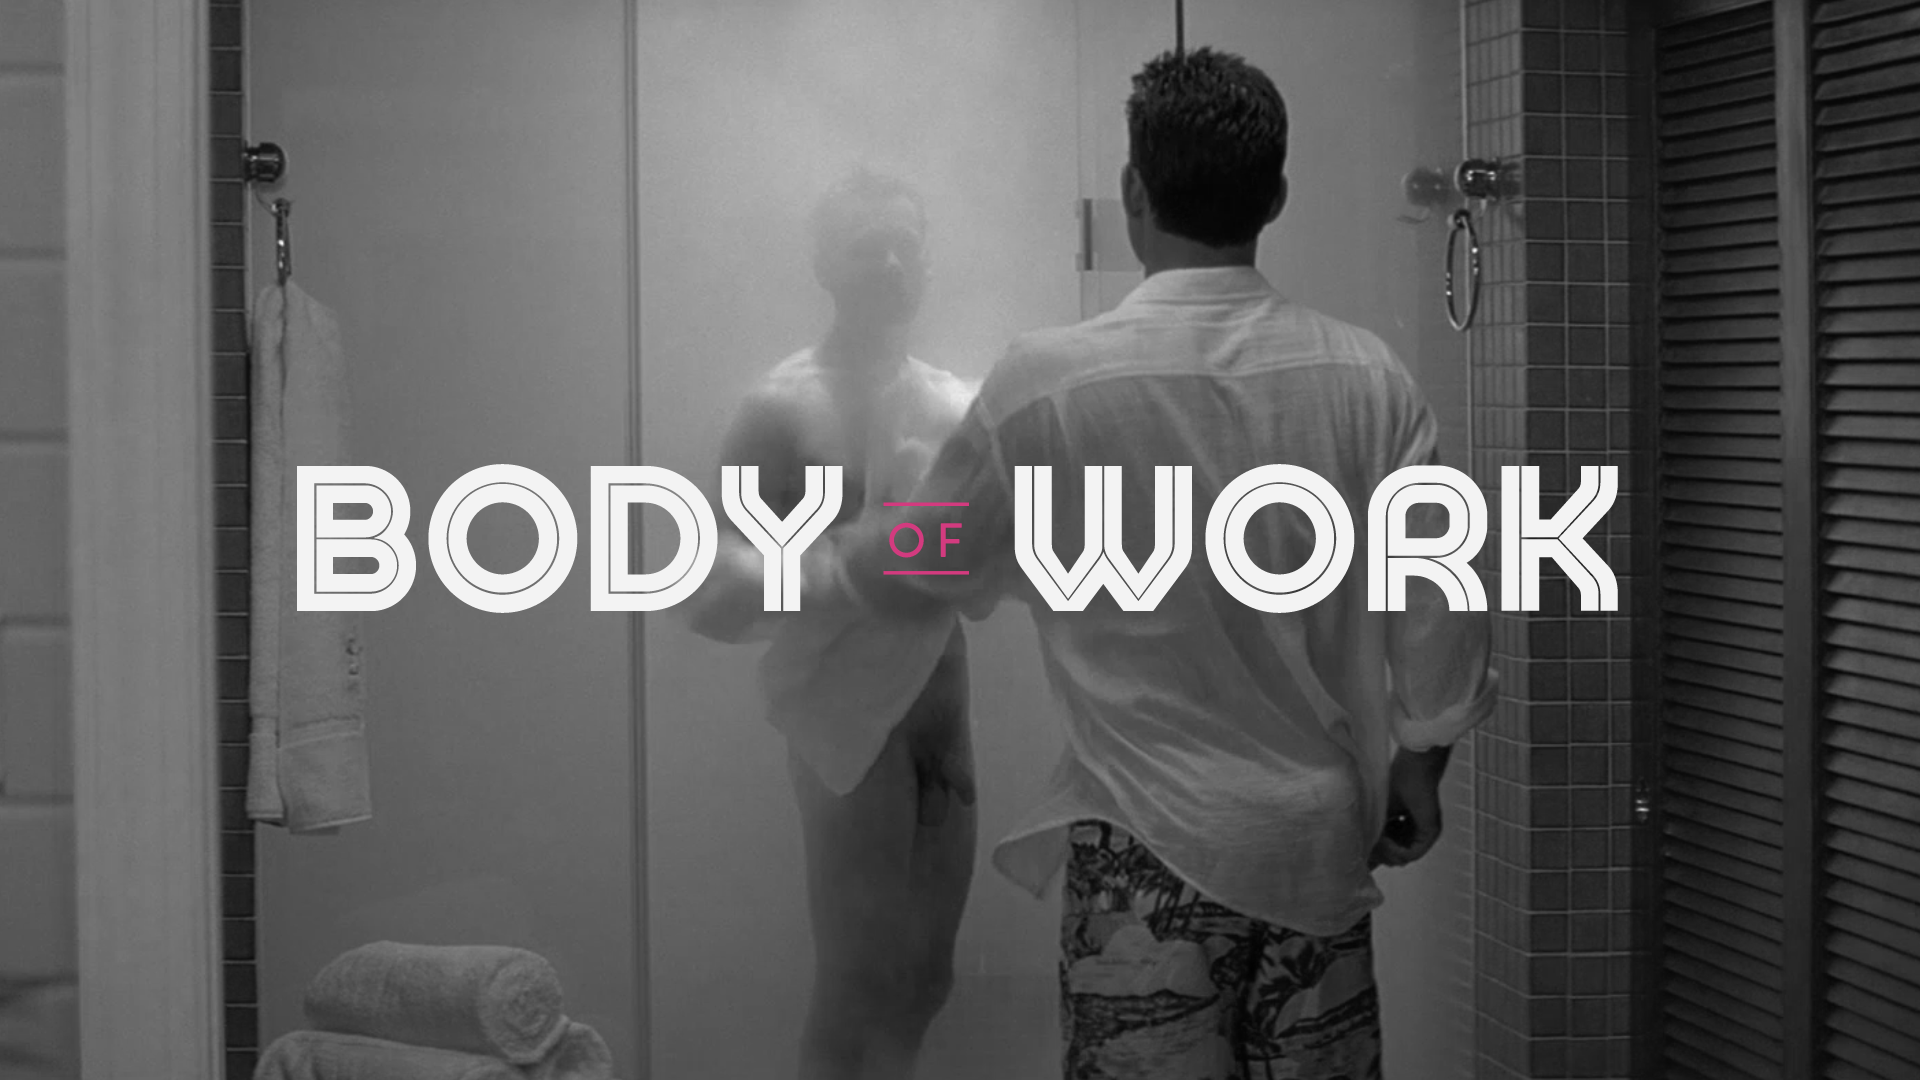 Bodyofwork kevinbacon 00 00 03 24 still002 nude preview image